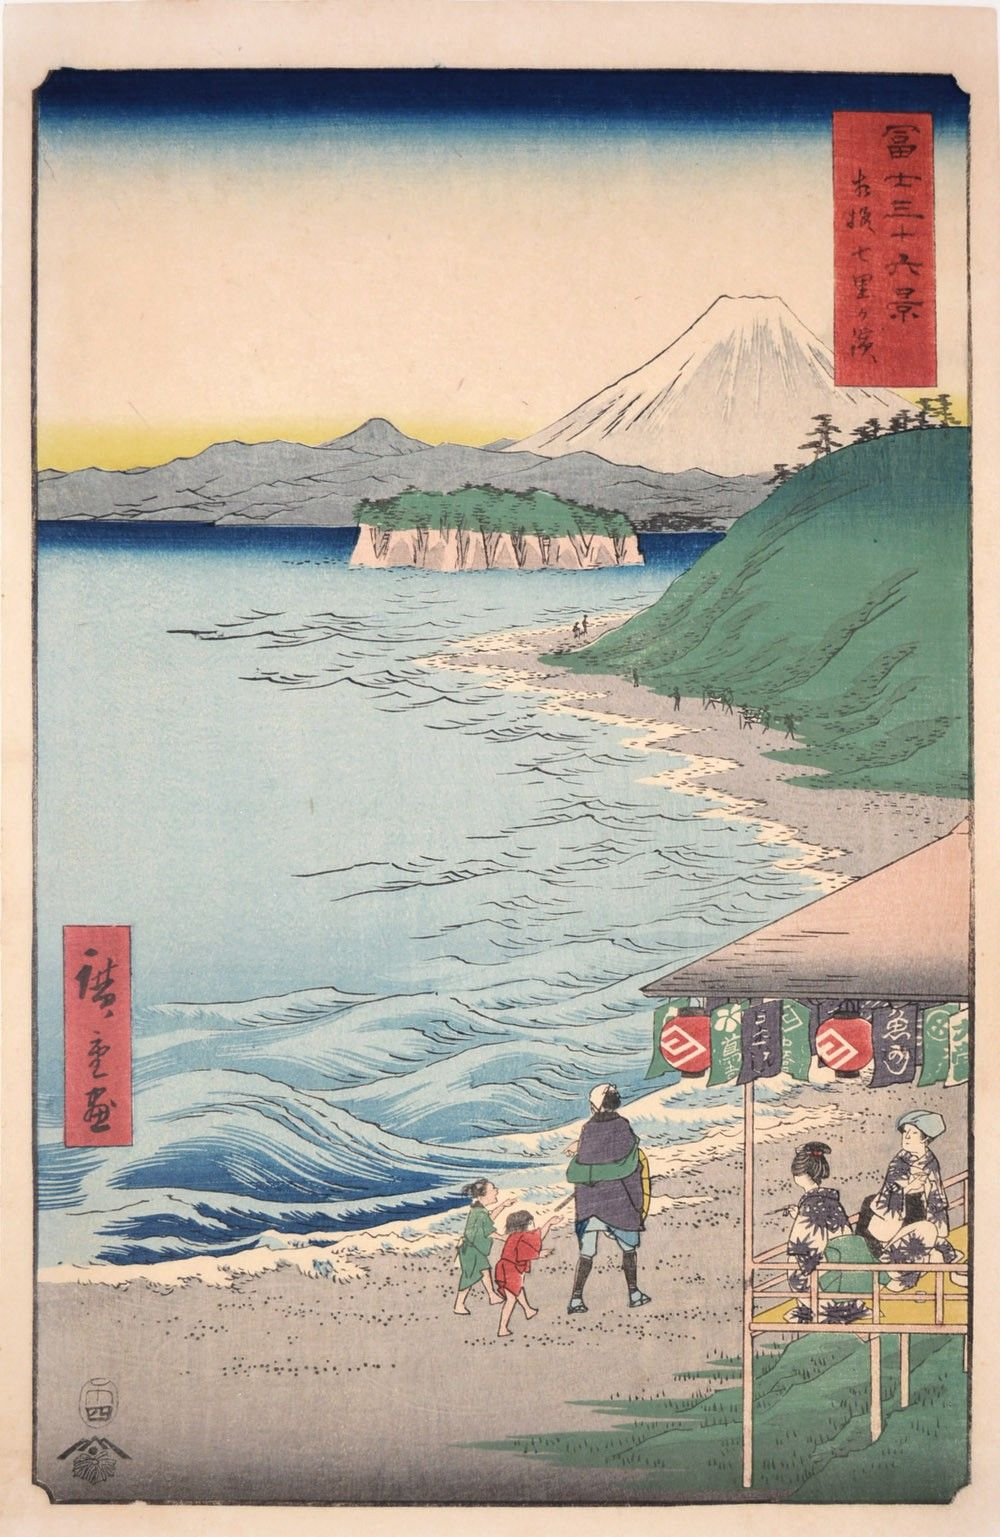 Deep green hills roll down from the right edge of the print to a shore scene. While figures can be found seated in the pavillion, walking along the water, and as distant silhouettes, the sea dominates the print. This expansive blue deepens as it meets a horizon of grey montains and a towering, snow-peaked Mt. Fuji.